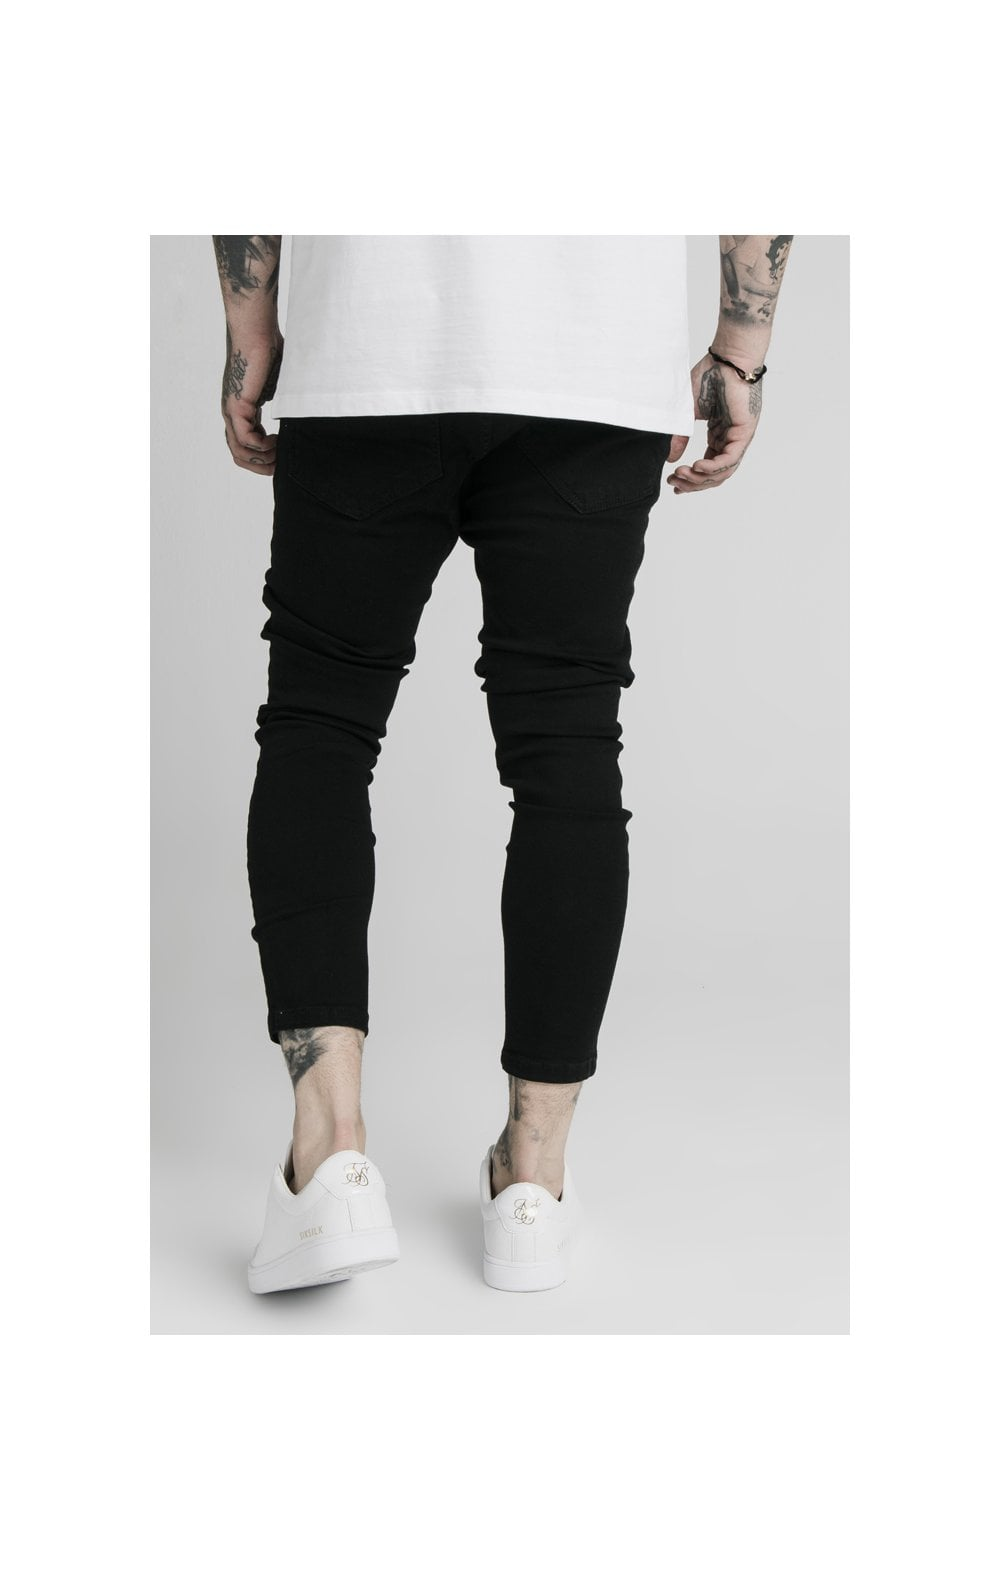 SikSilk Ultra Drop Crotch Denims - Black (5)